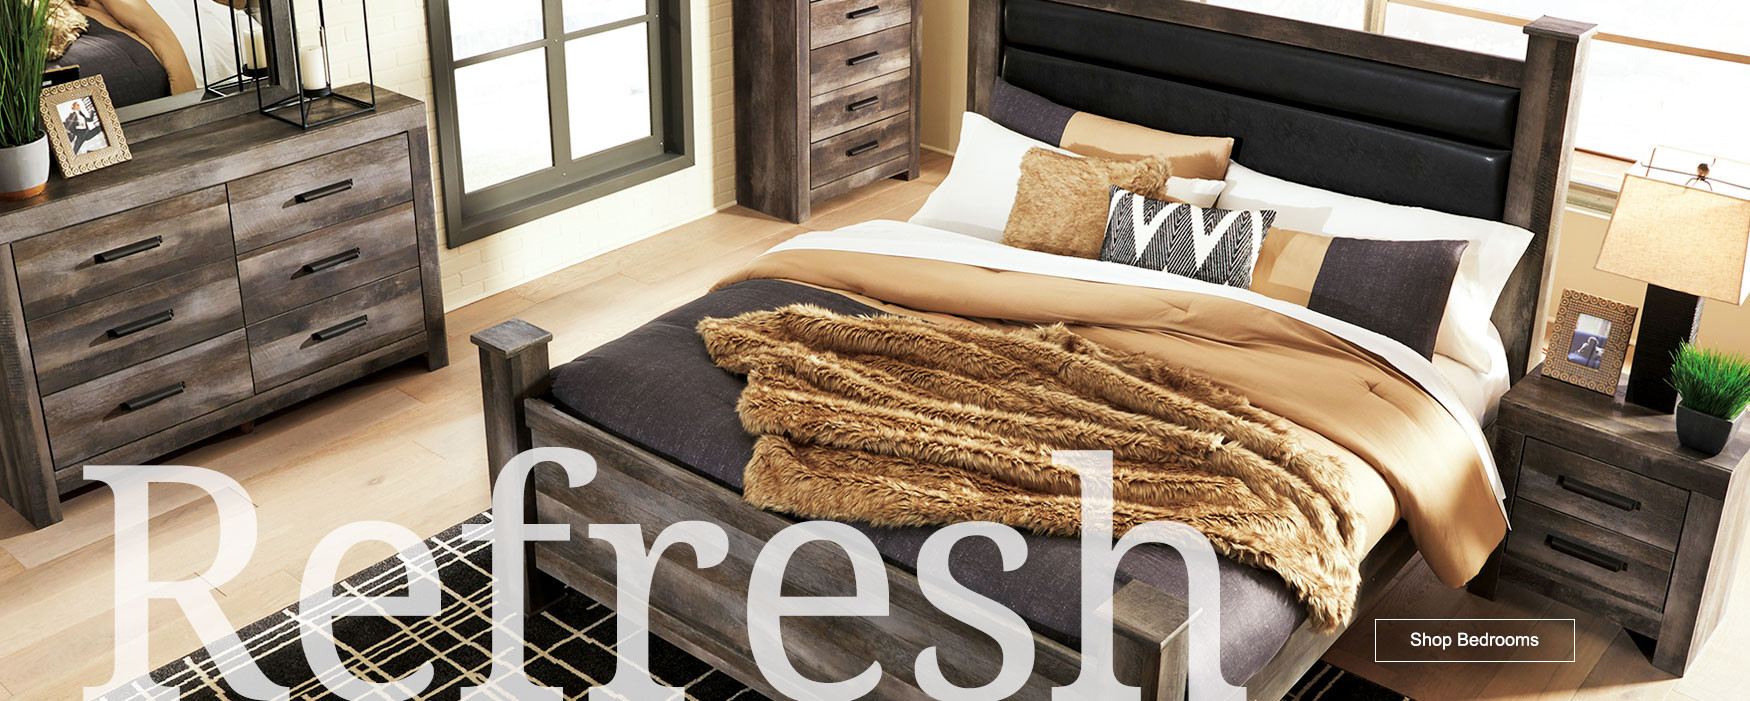 The Best Furniture And Mattress Store In Ft Bragg And Fayetteville Nc Lee Furniture